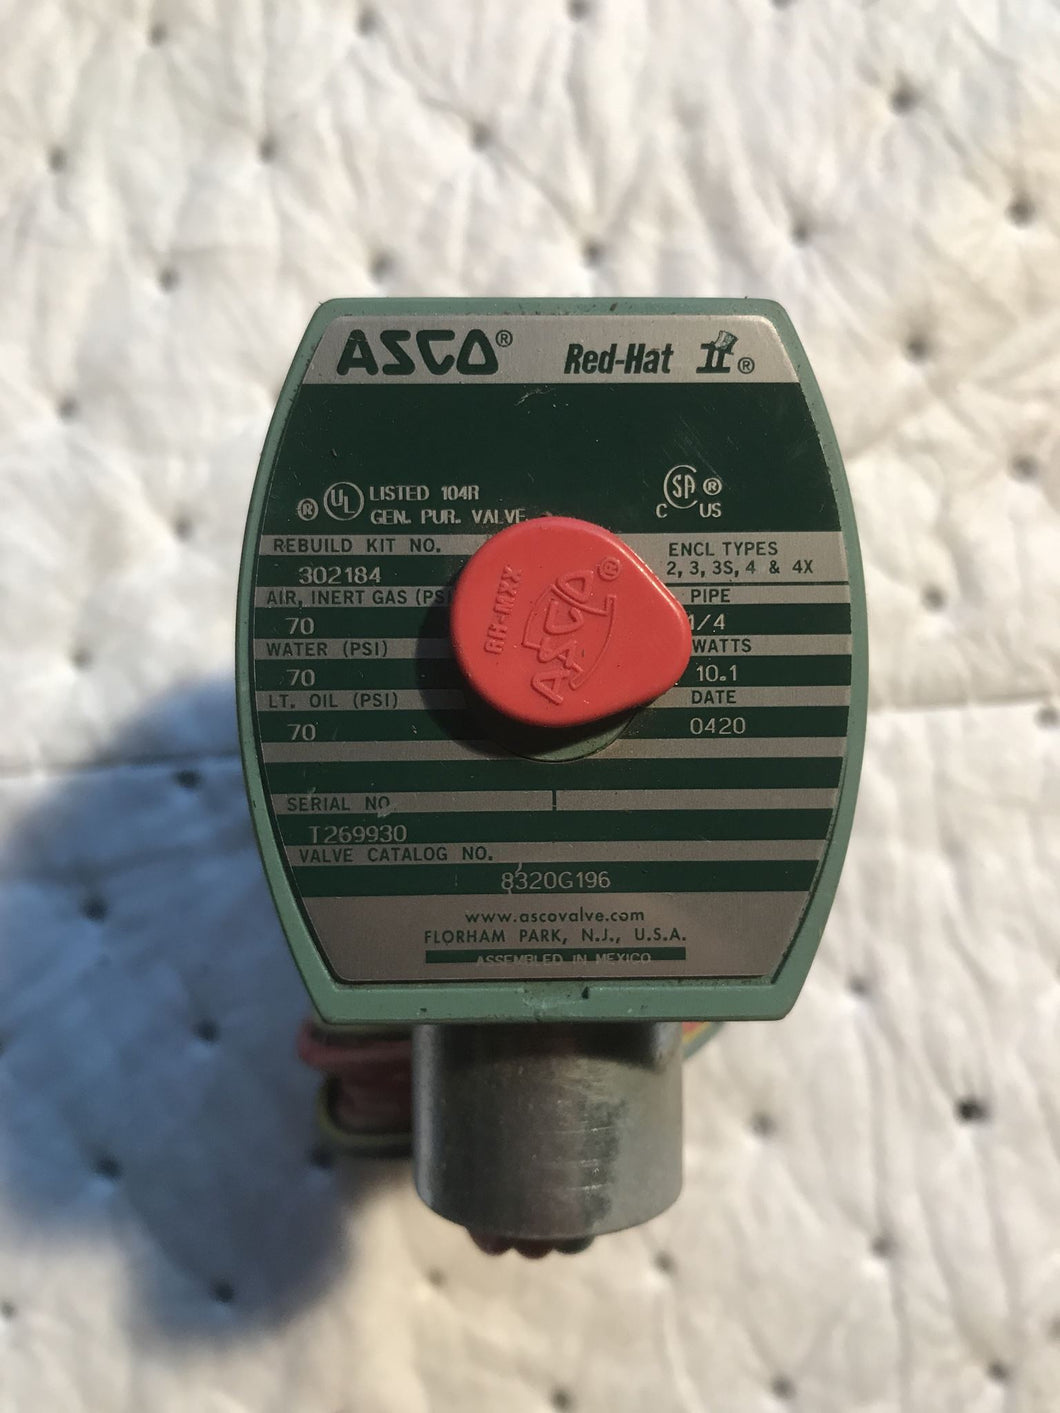 Asco Red Hat 8320G196 Valve